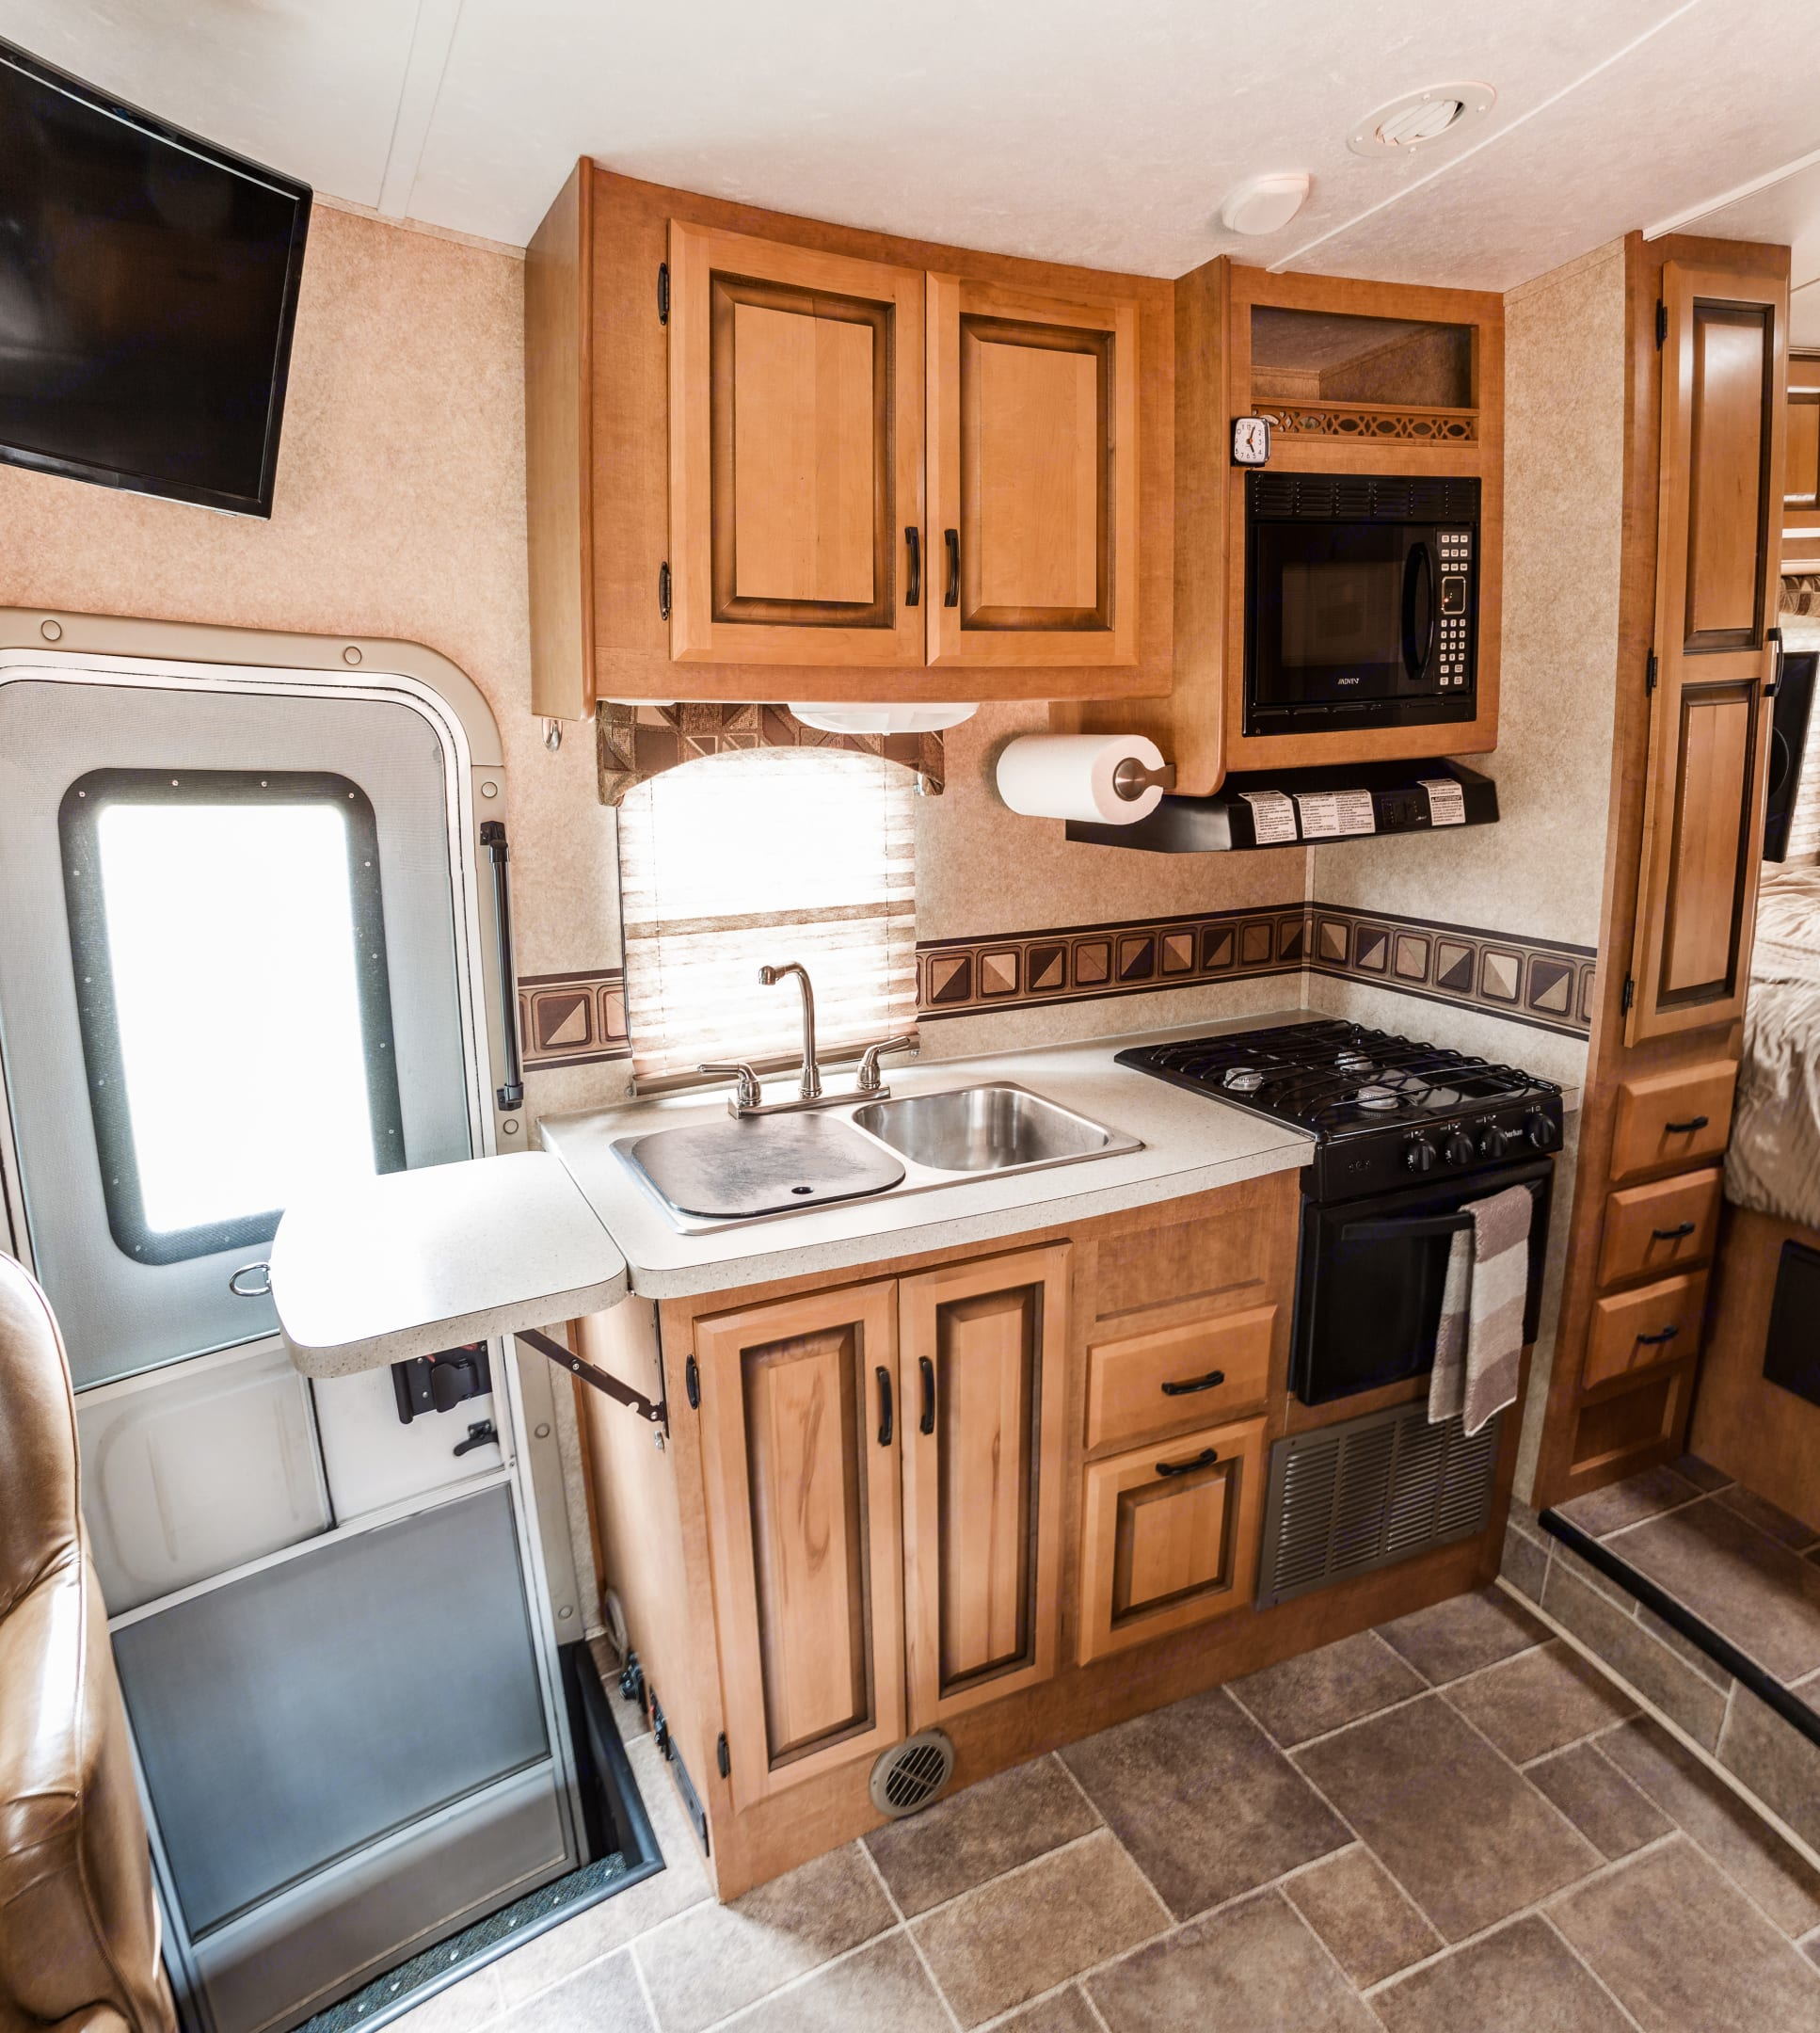 Kitchen area, all cooking necessities and plates provided Microwave, Stove, Oven, inline water filtration system, bathroom sink with mirror and separate kitchen sink. Forest River Sunseeker 2450s 2013